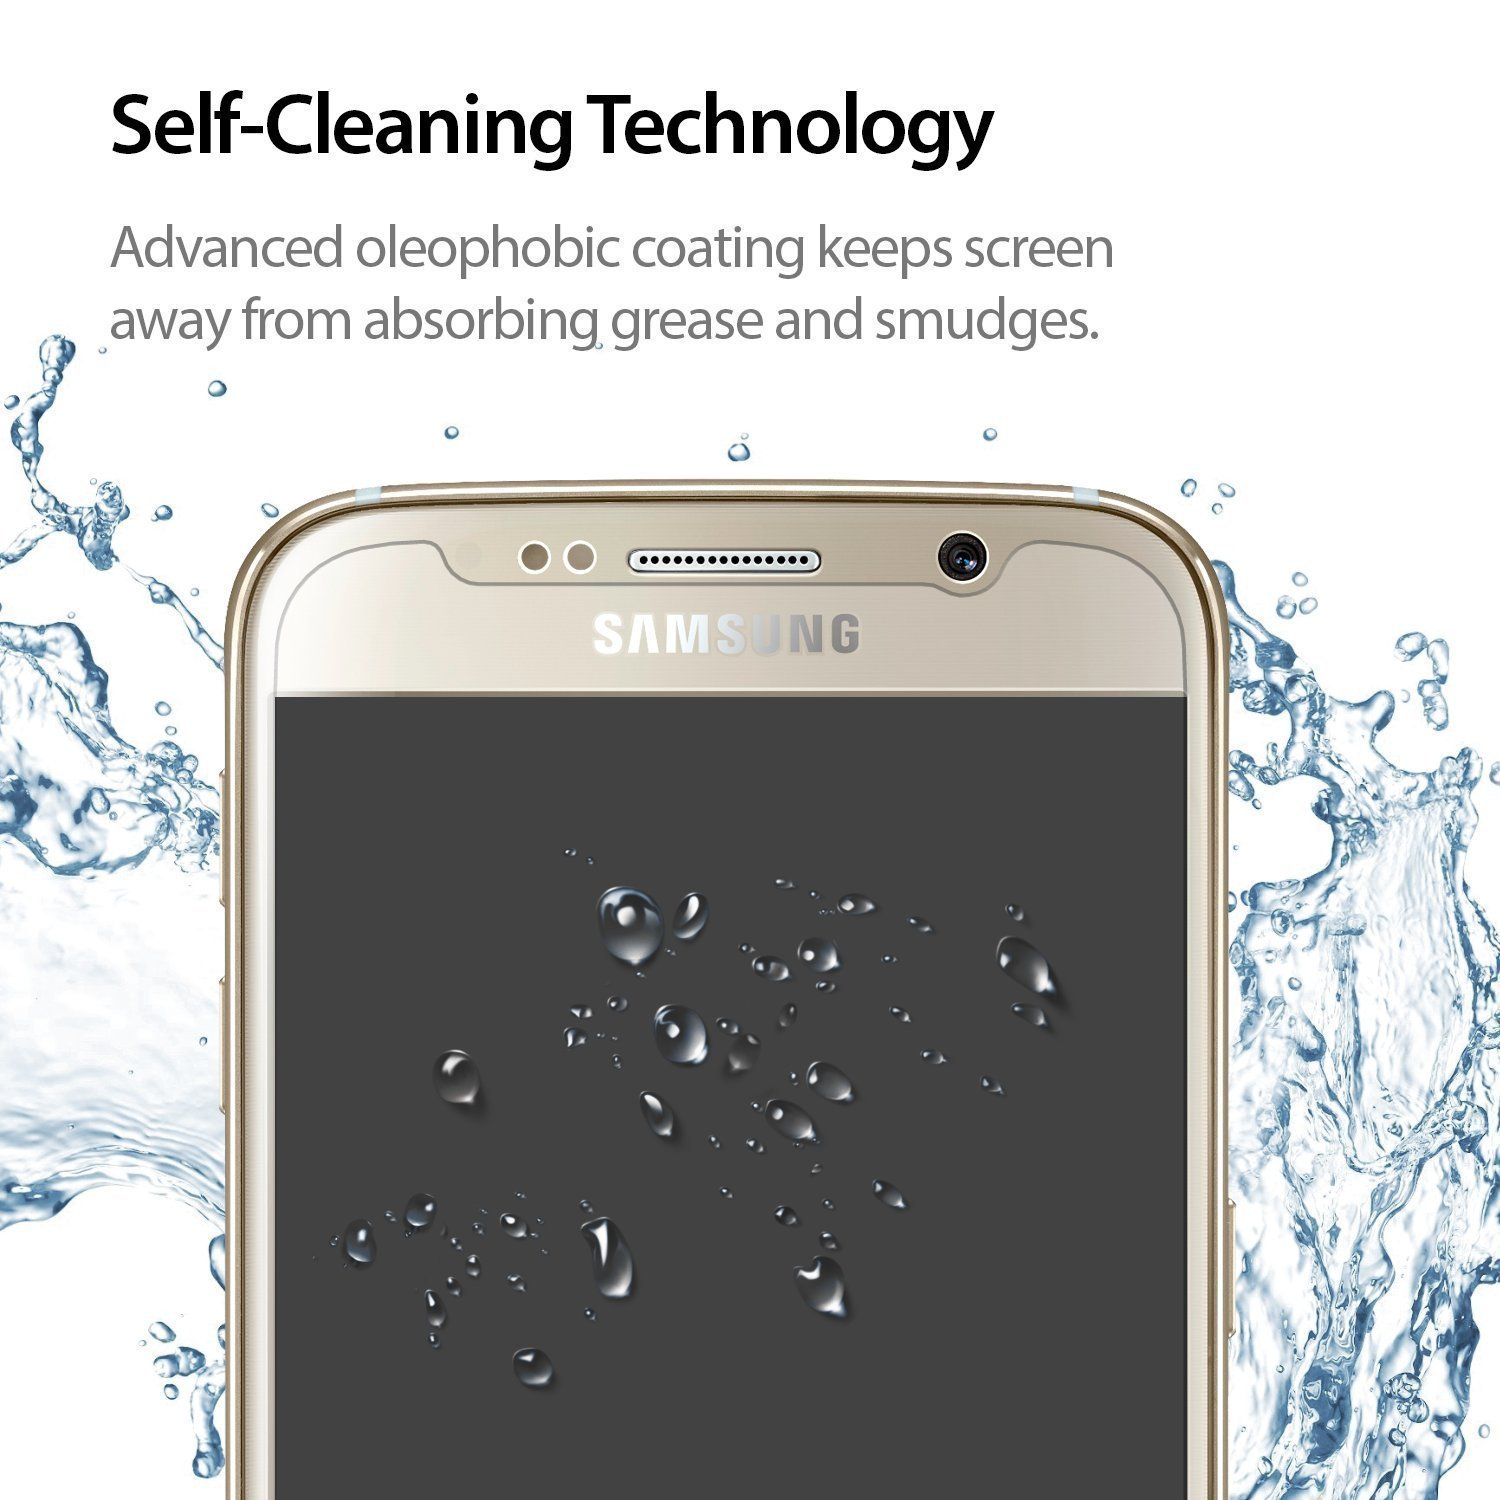 Amazon DEW S Bullet Proof Glass Screen Protector for Samsung Galaxy S5 2 Pack Electronics